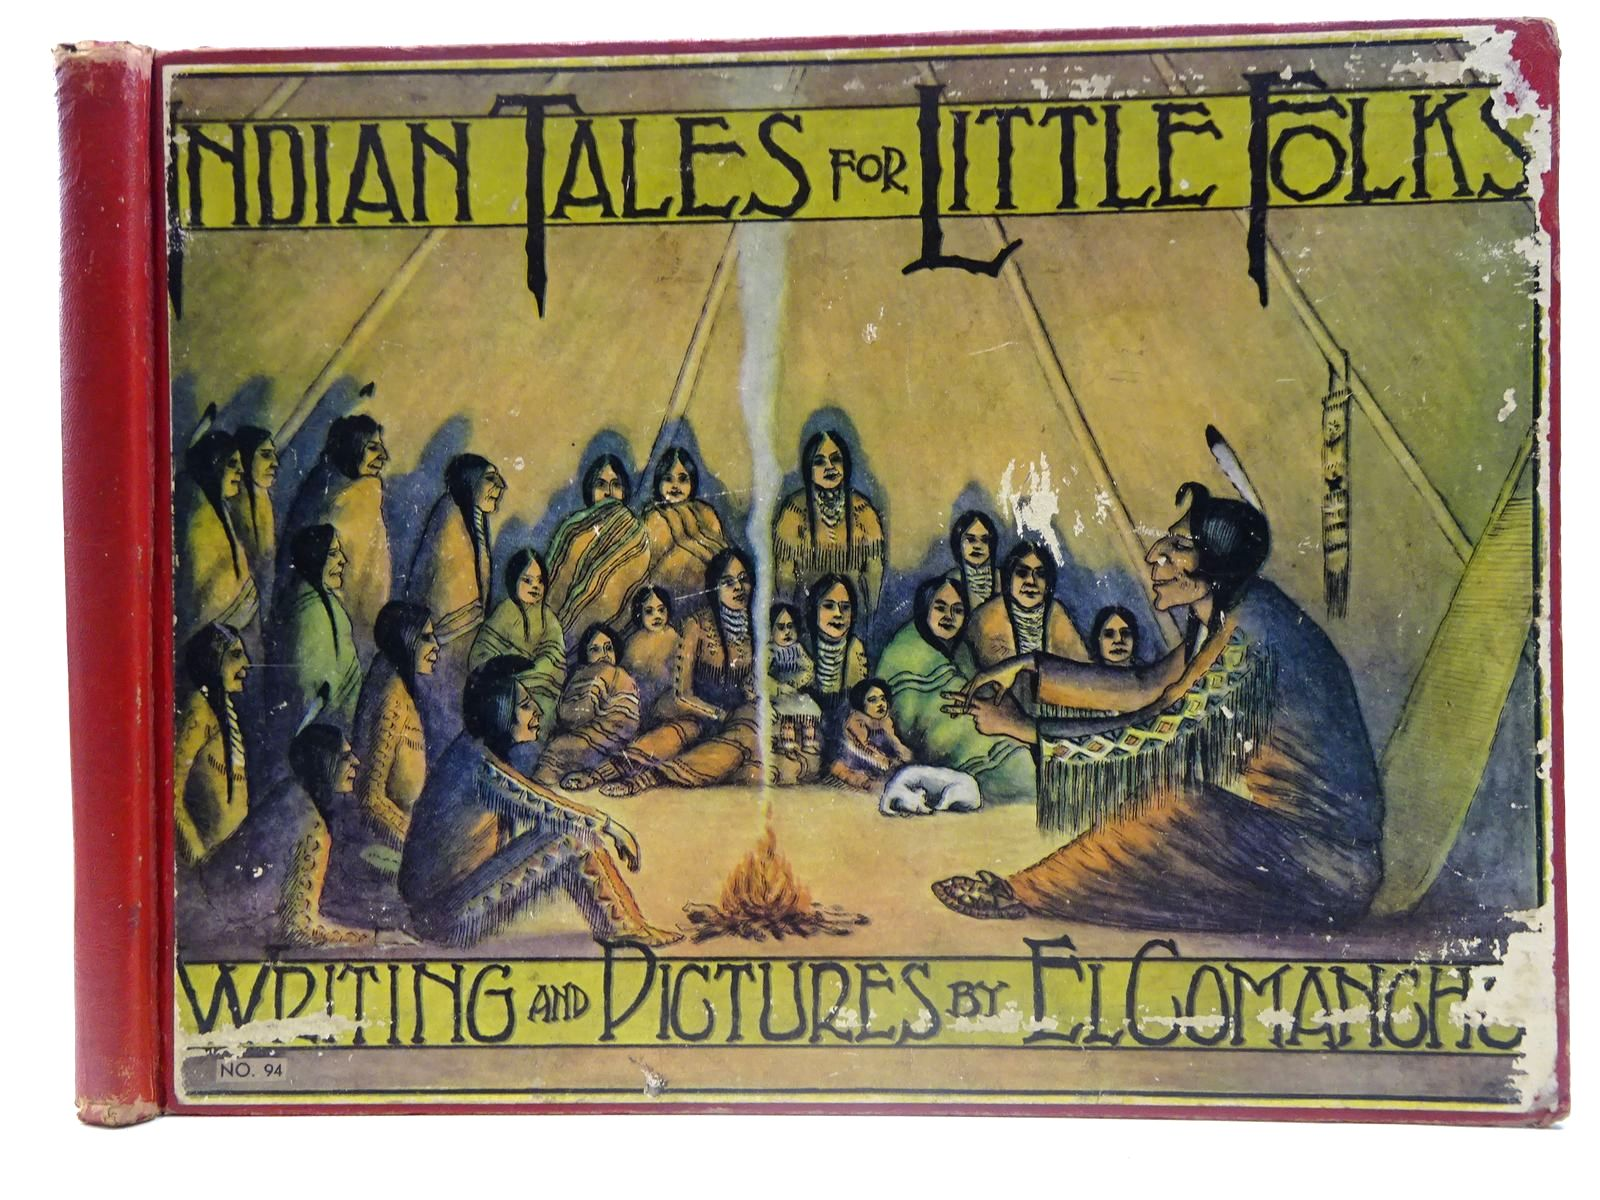 Photo of INDIAN TALES FOR LITTLE FOLKS written by Phillips, W.S. Comancho, El illustrated by Phillips, W.S. published by The Platt And Munk Co. Inc. (STOCK CODE: 2127700)  for sale by Stella & Rose's Books